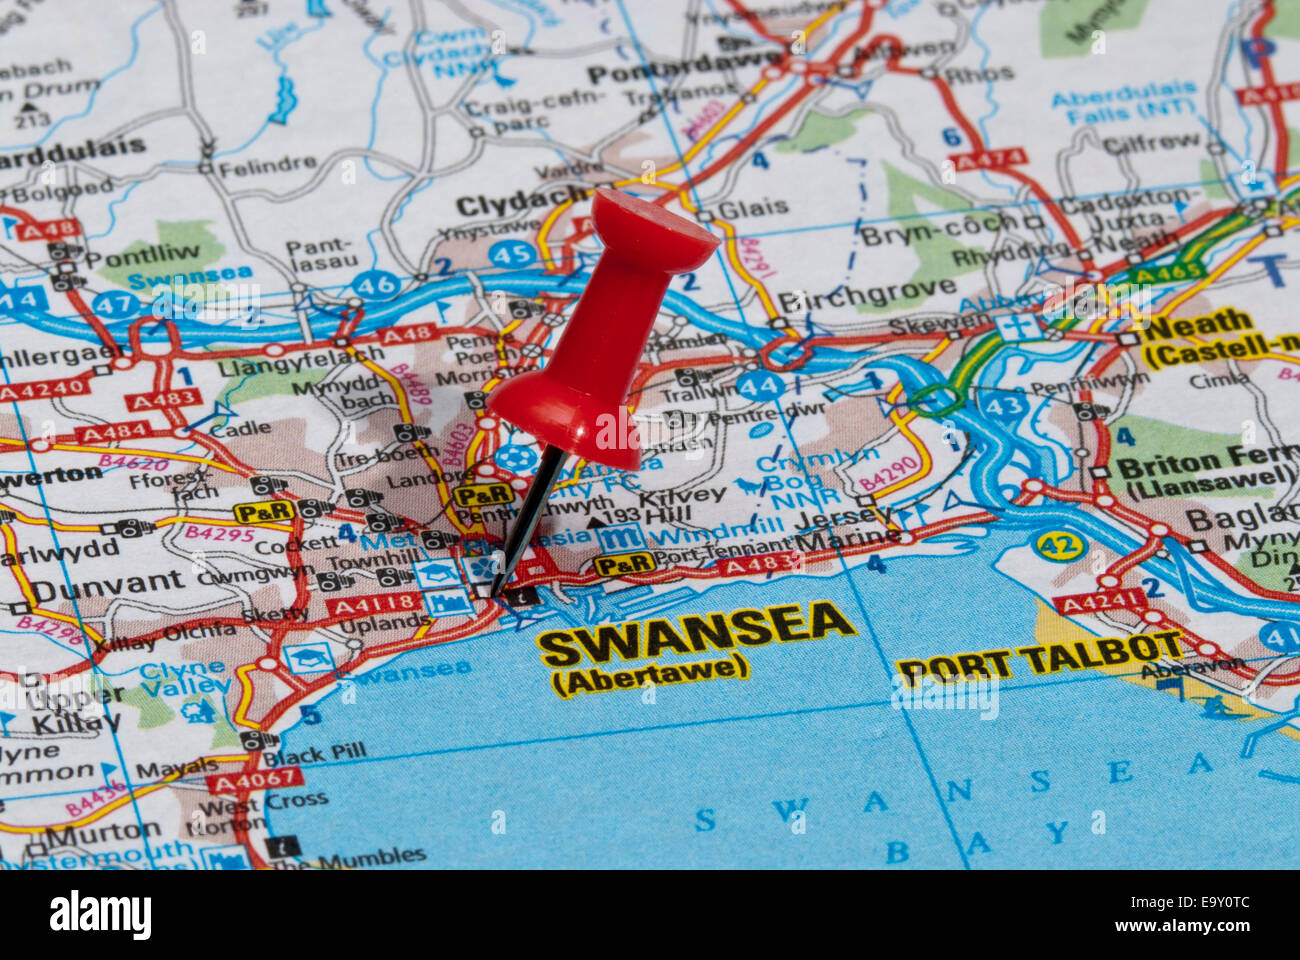 red map pin in road map pointing to city of Swansea Stock Photo